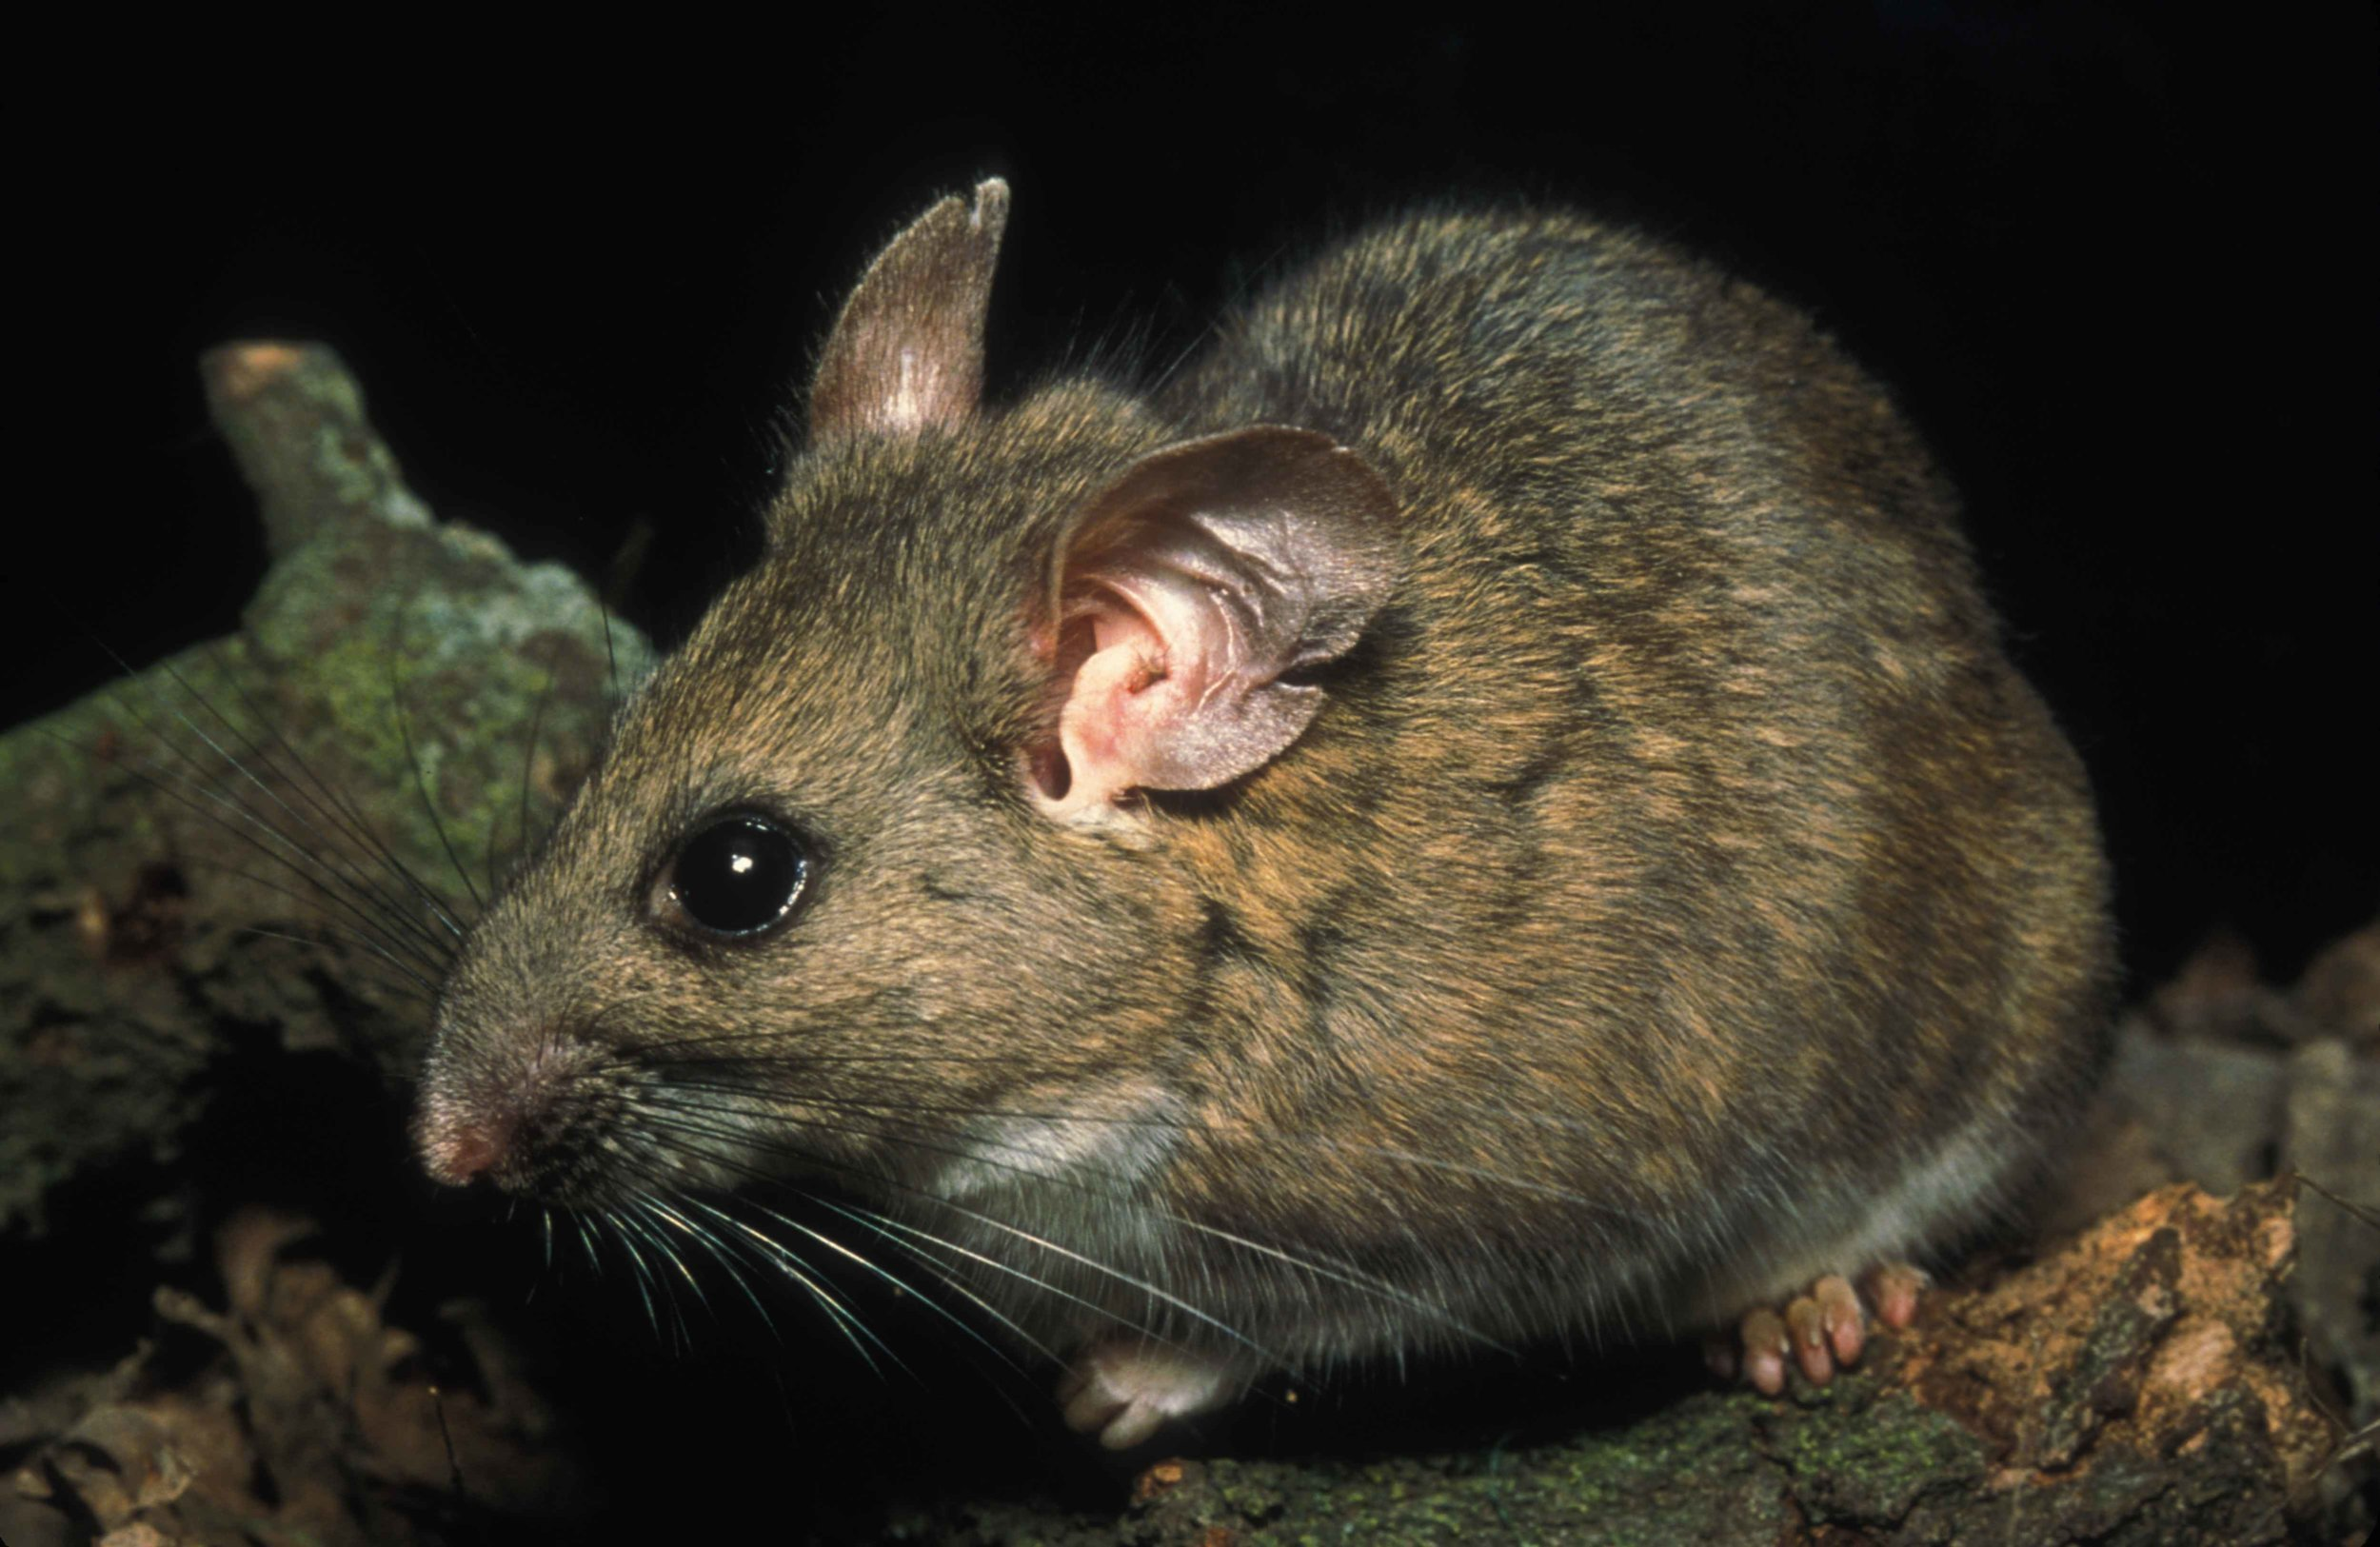 Riparian_woodrat_neotoma_fuscipes_riparia_endangered_mammal_species.jpg